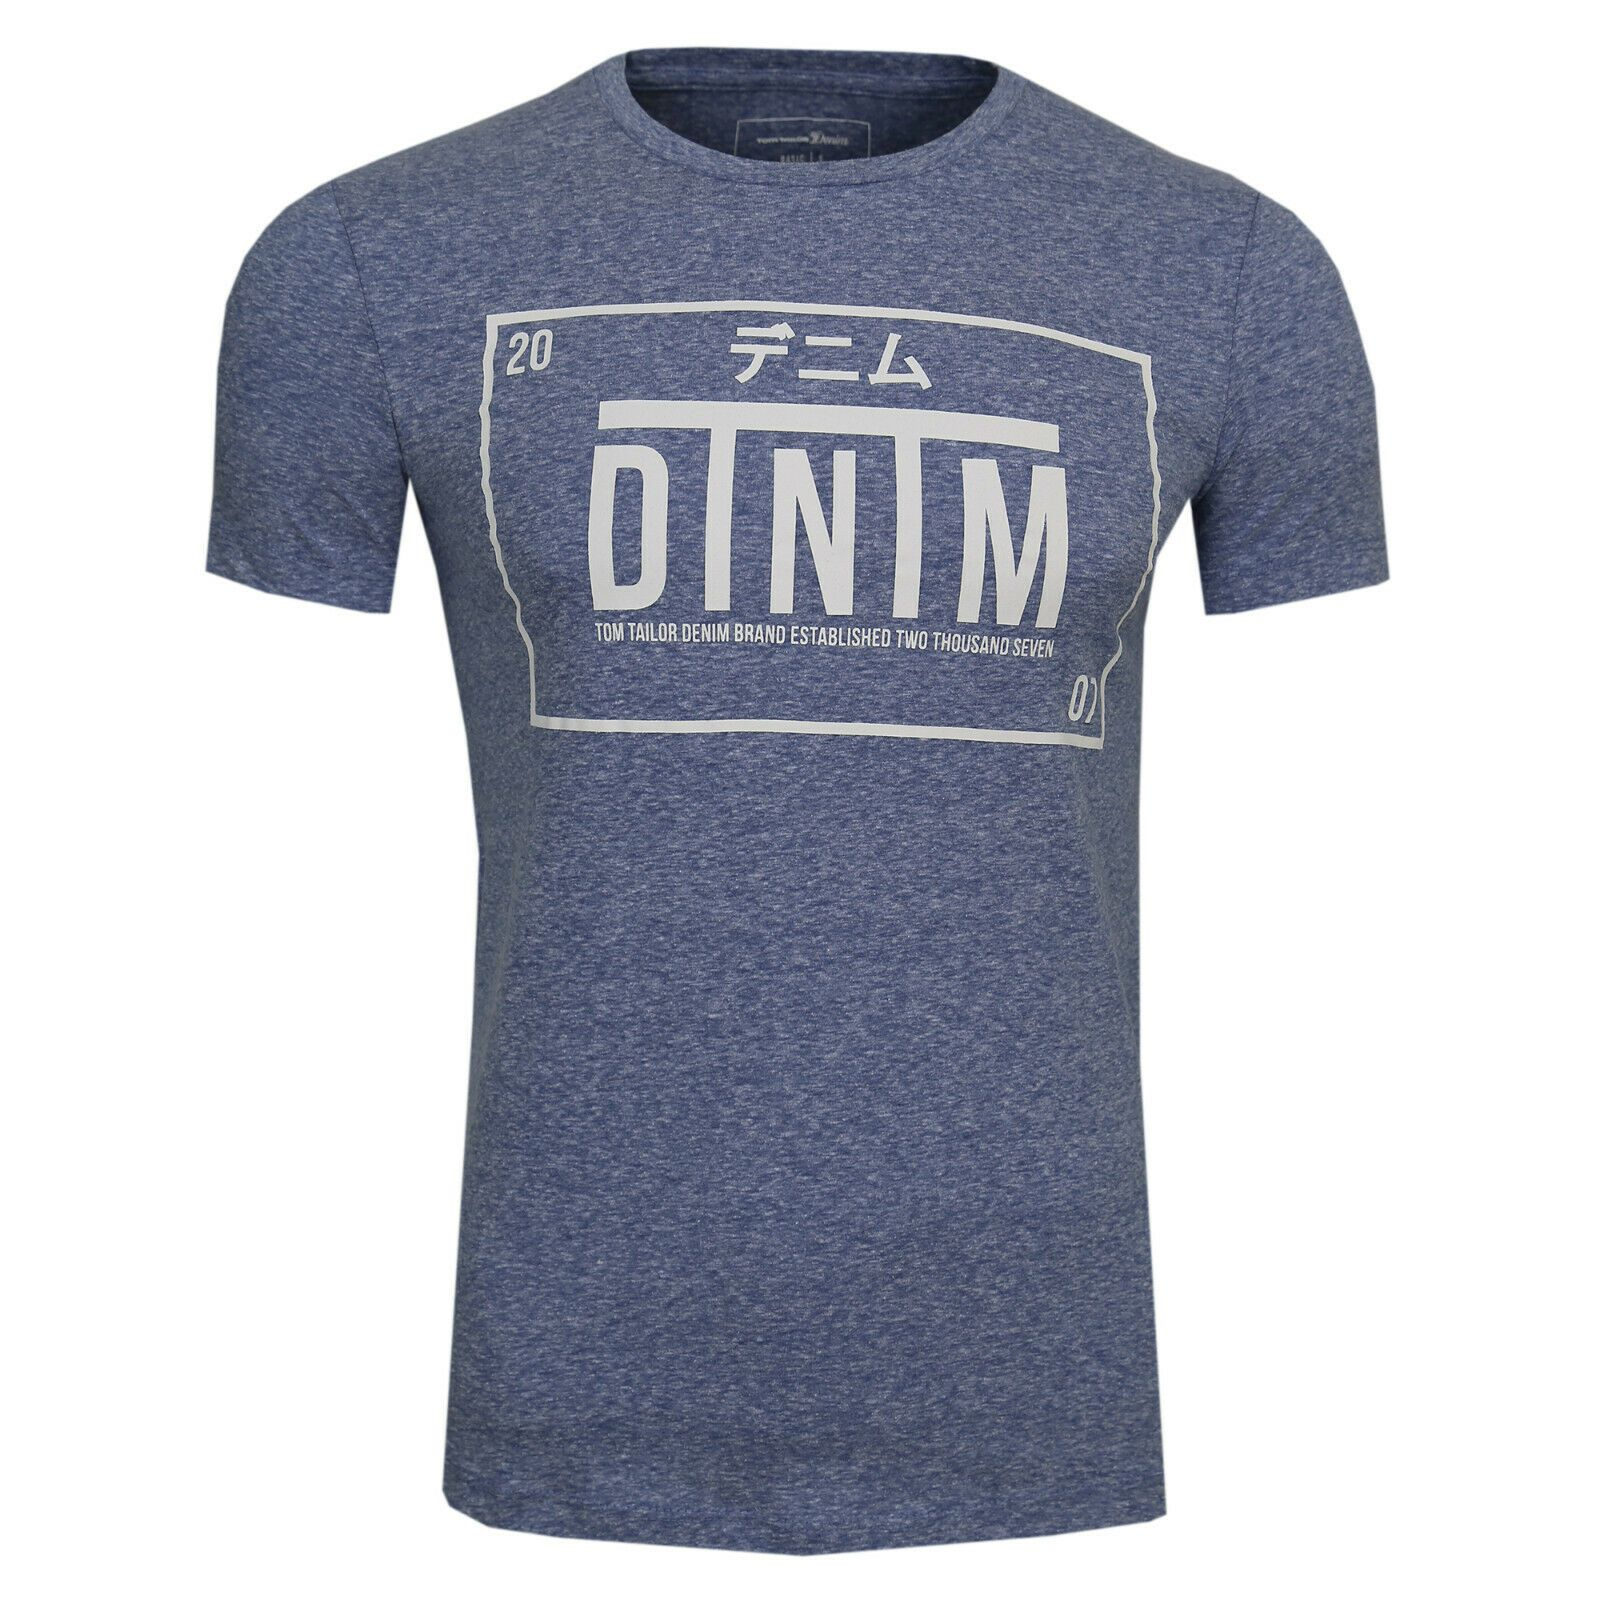 TOM TAILOR Denim T-Shirt mit Print Herren Mélange Print - Jack & Jones